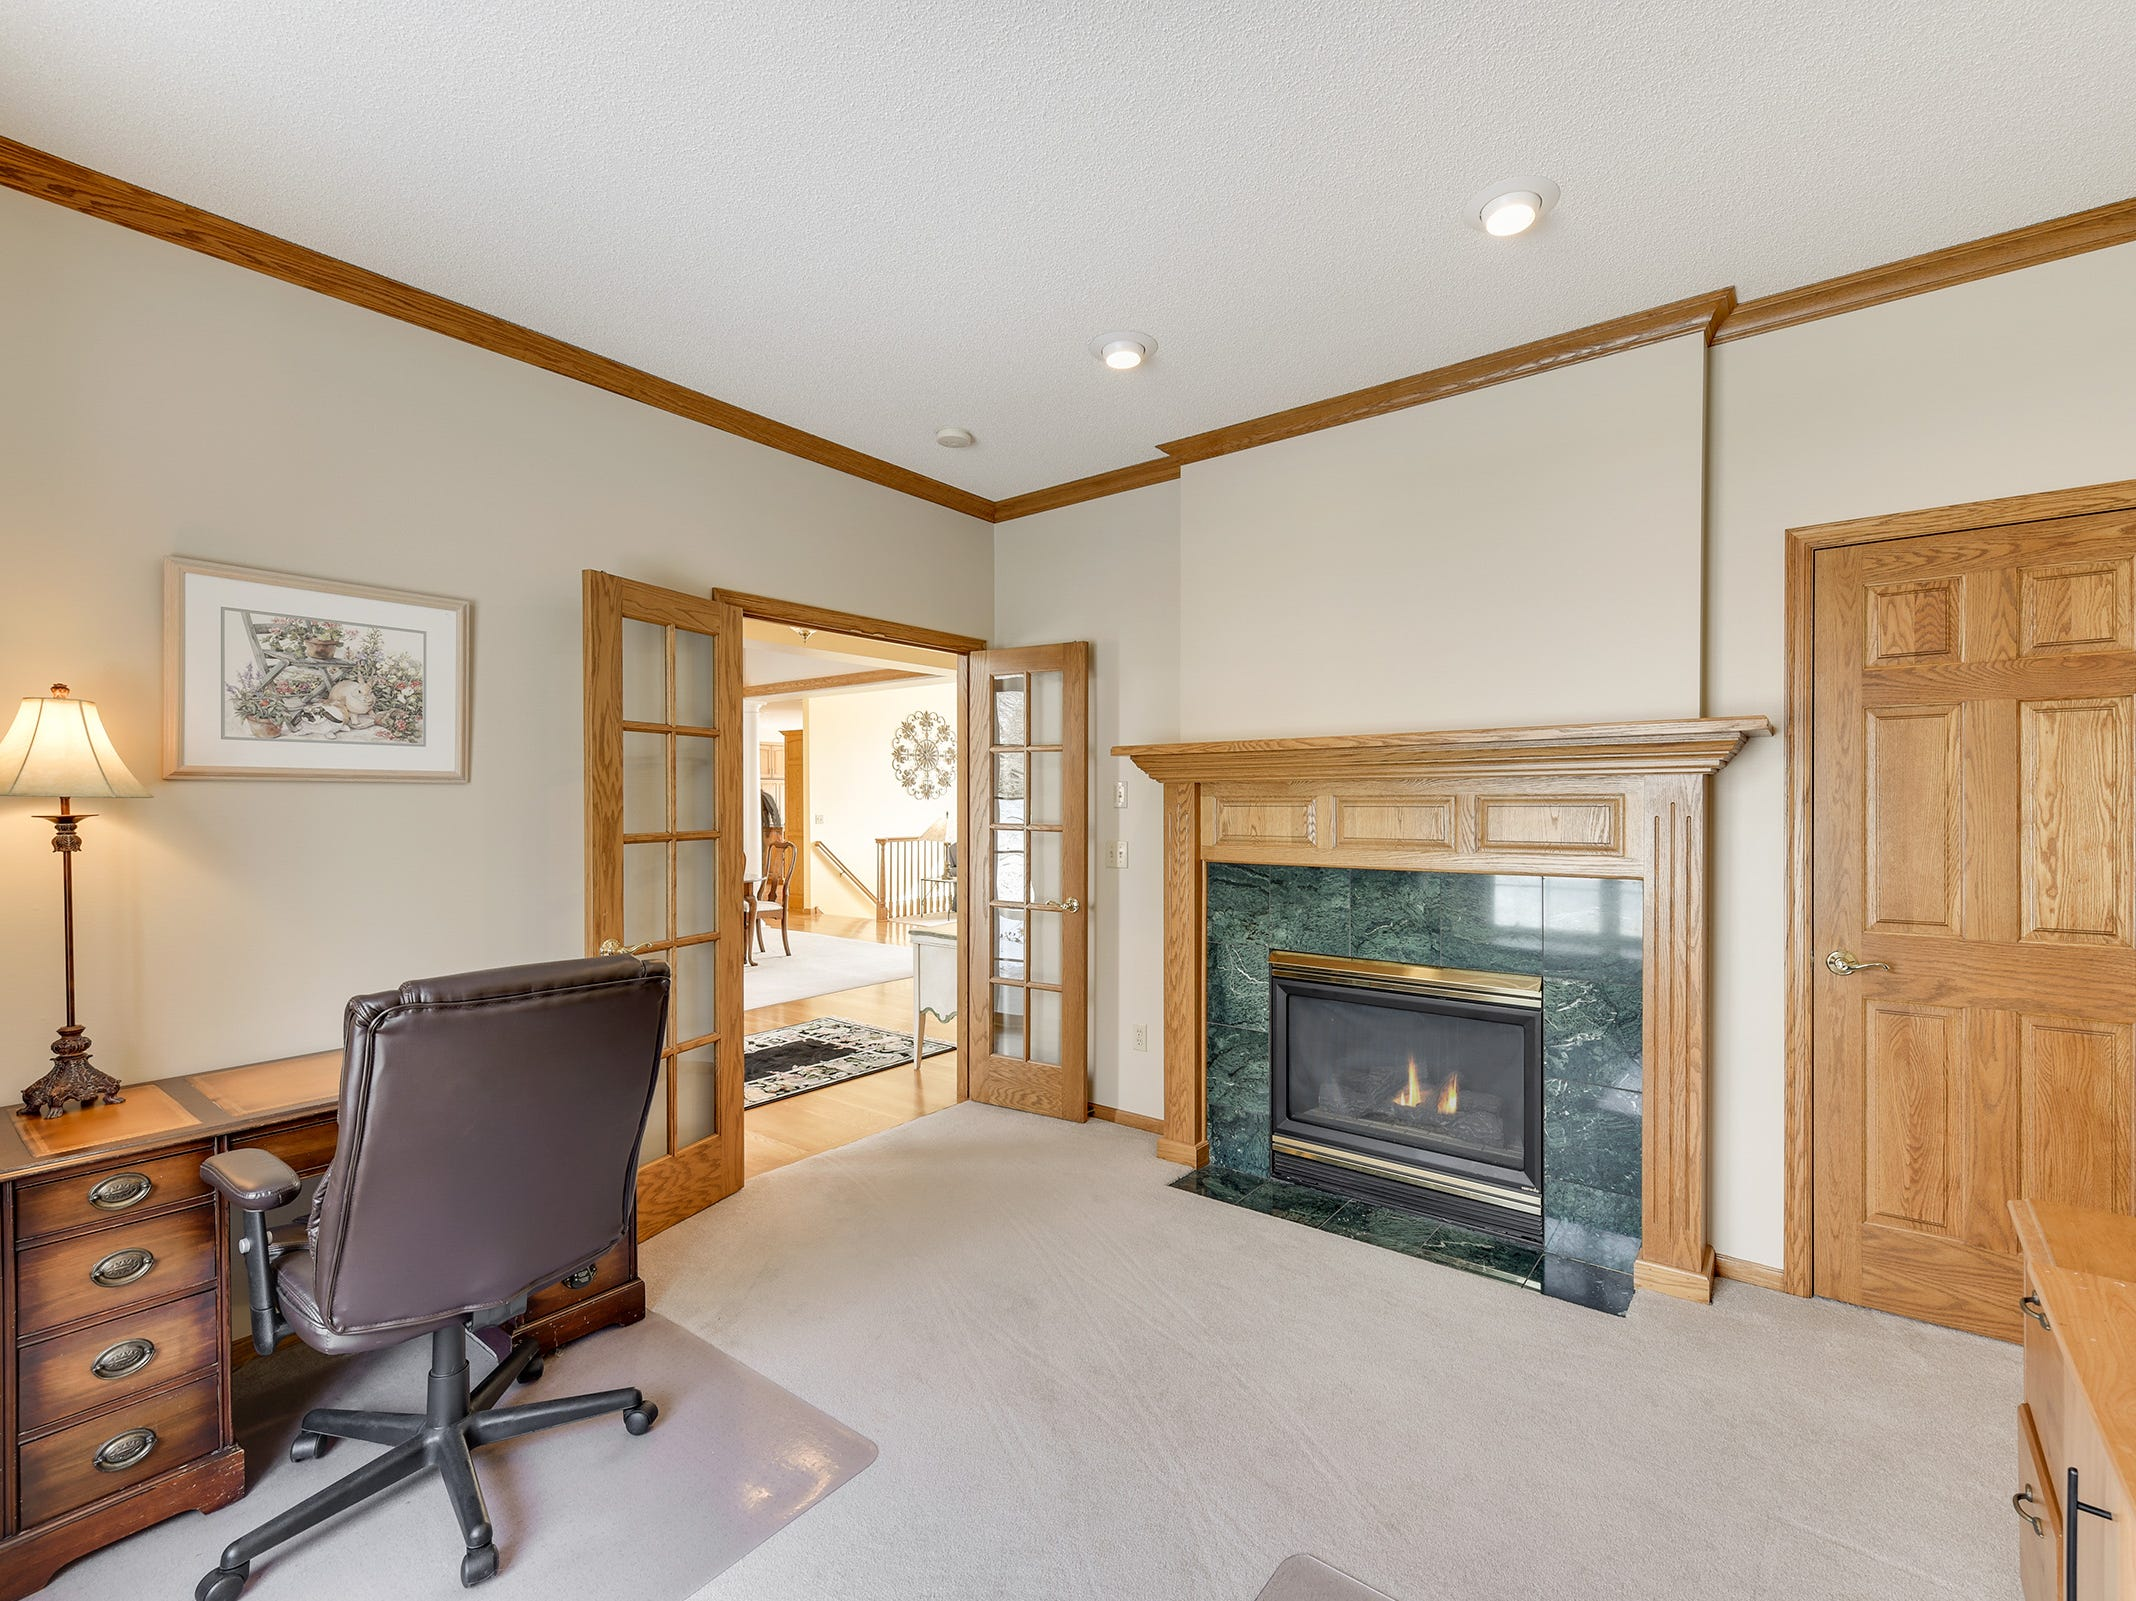 The office features a gas fireplace and natural woodworking.